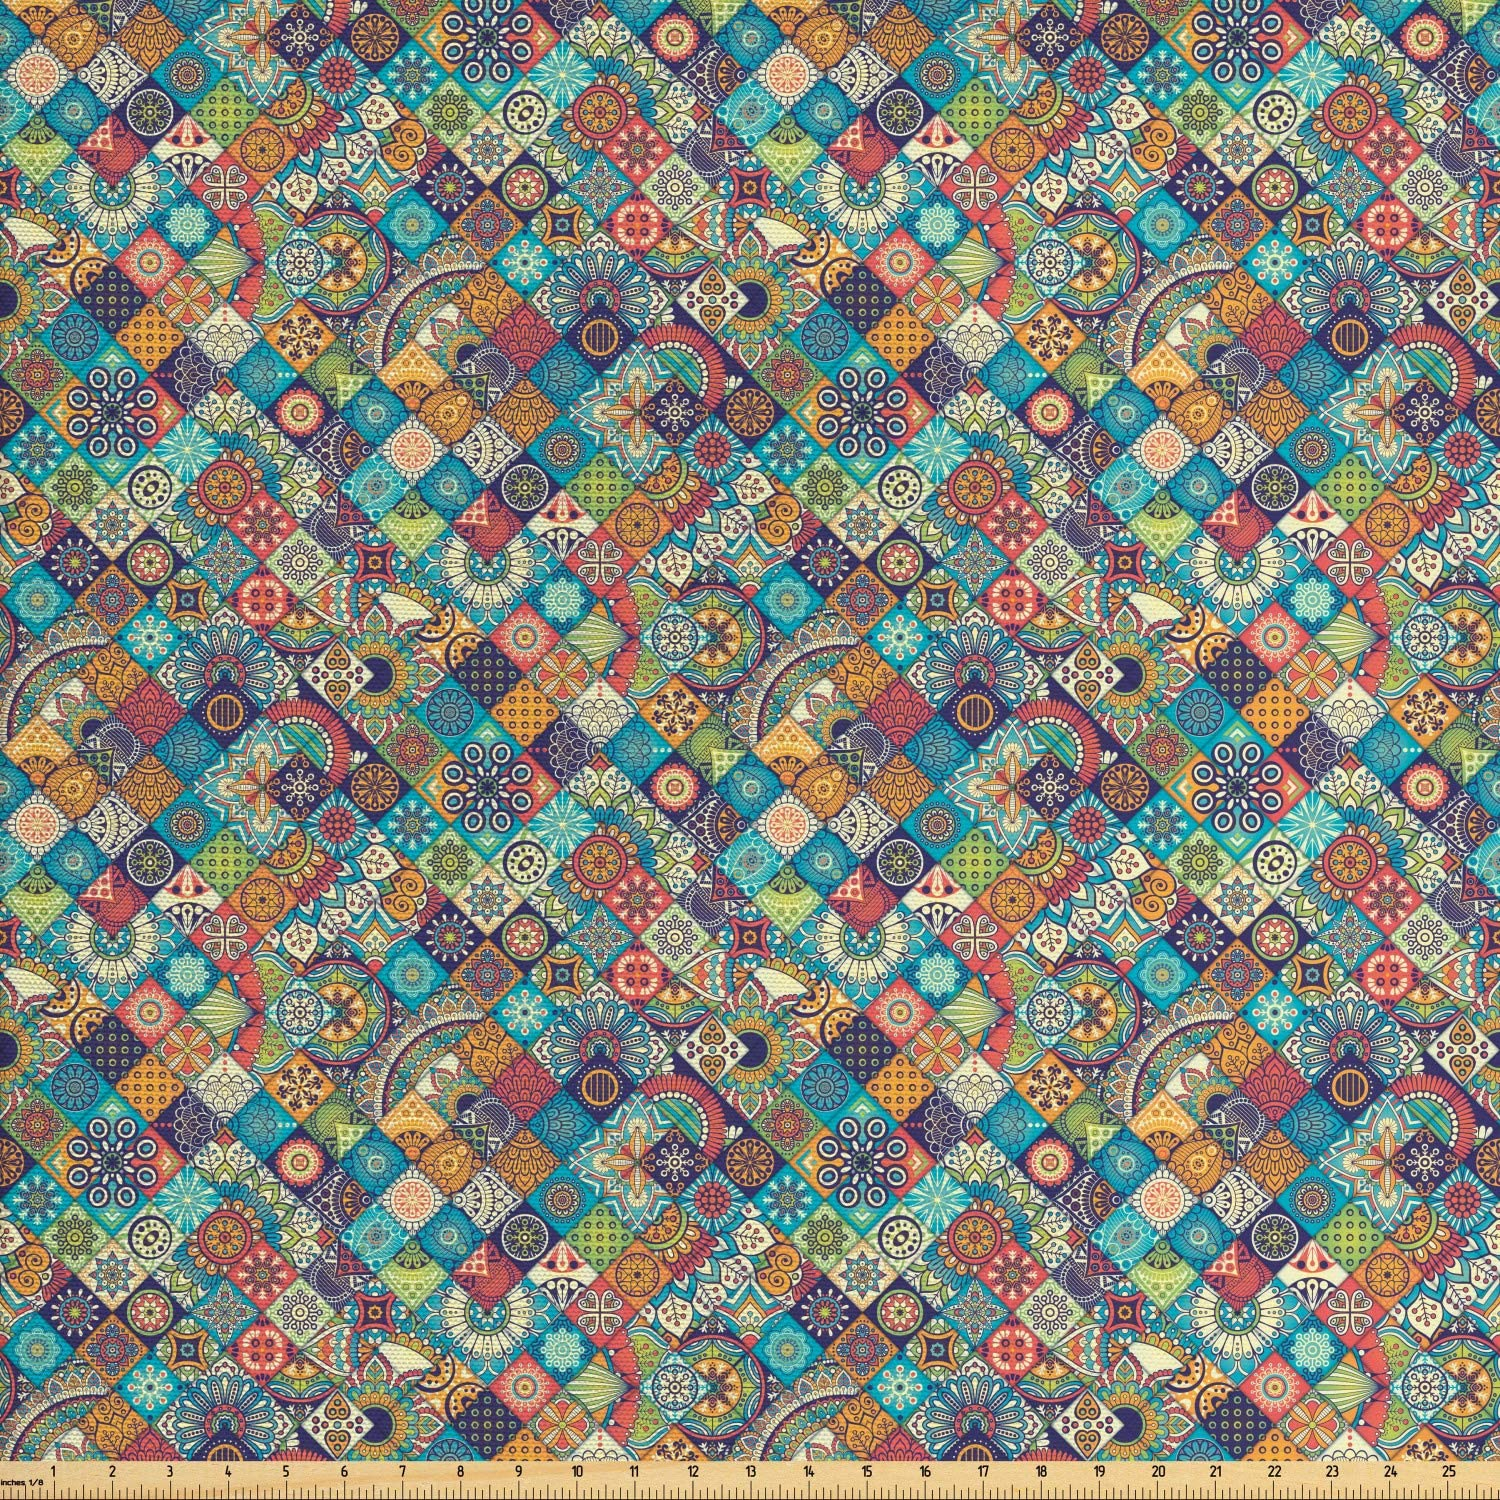 Ambesonne Bohemian Fabric by The Yard, Geometric Pattern with Ornamental Floral Folk Art Abstract, Decorative Fabric for Upholstery and Home Accents, 1 Yard, Blue Cream